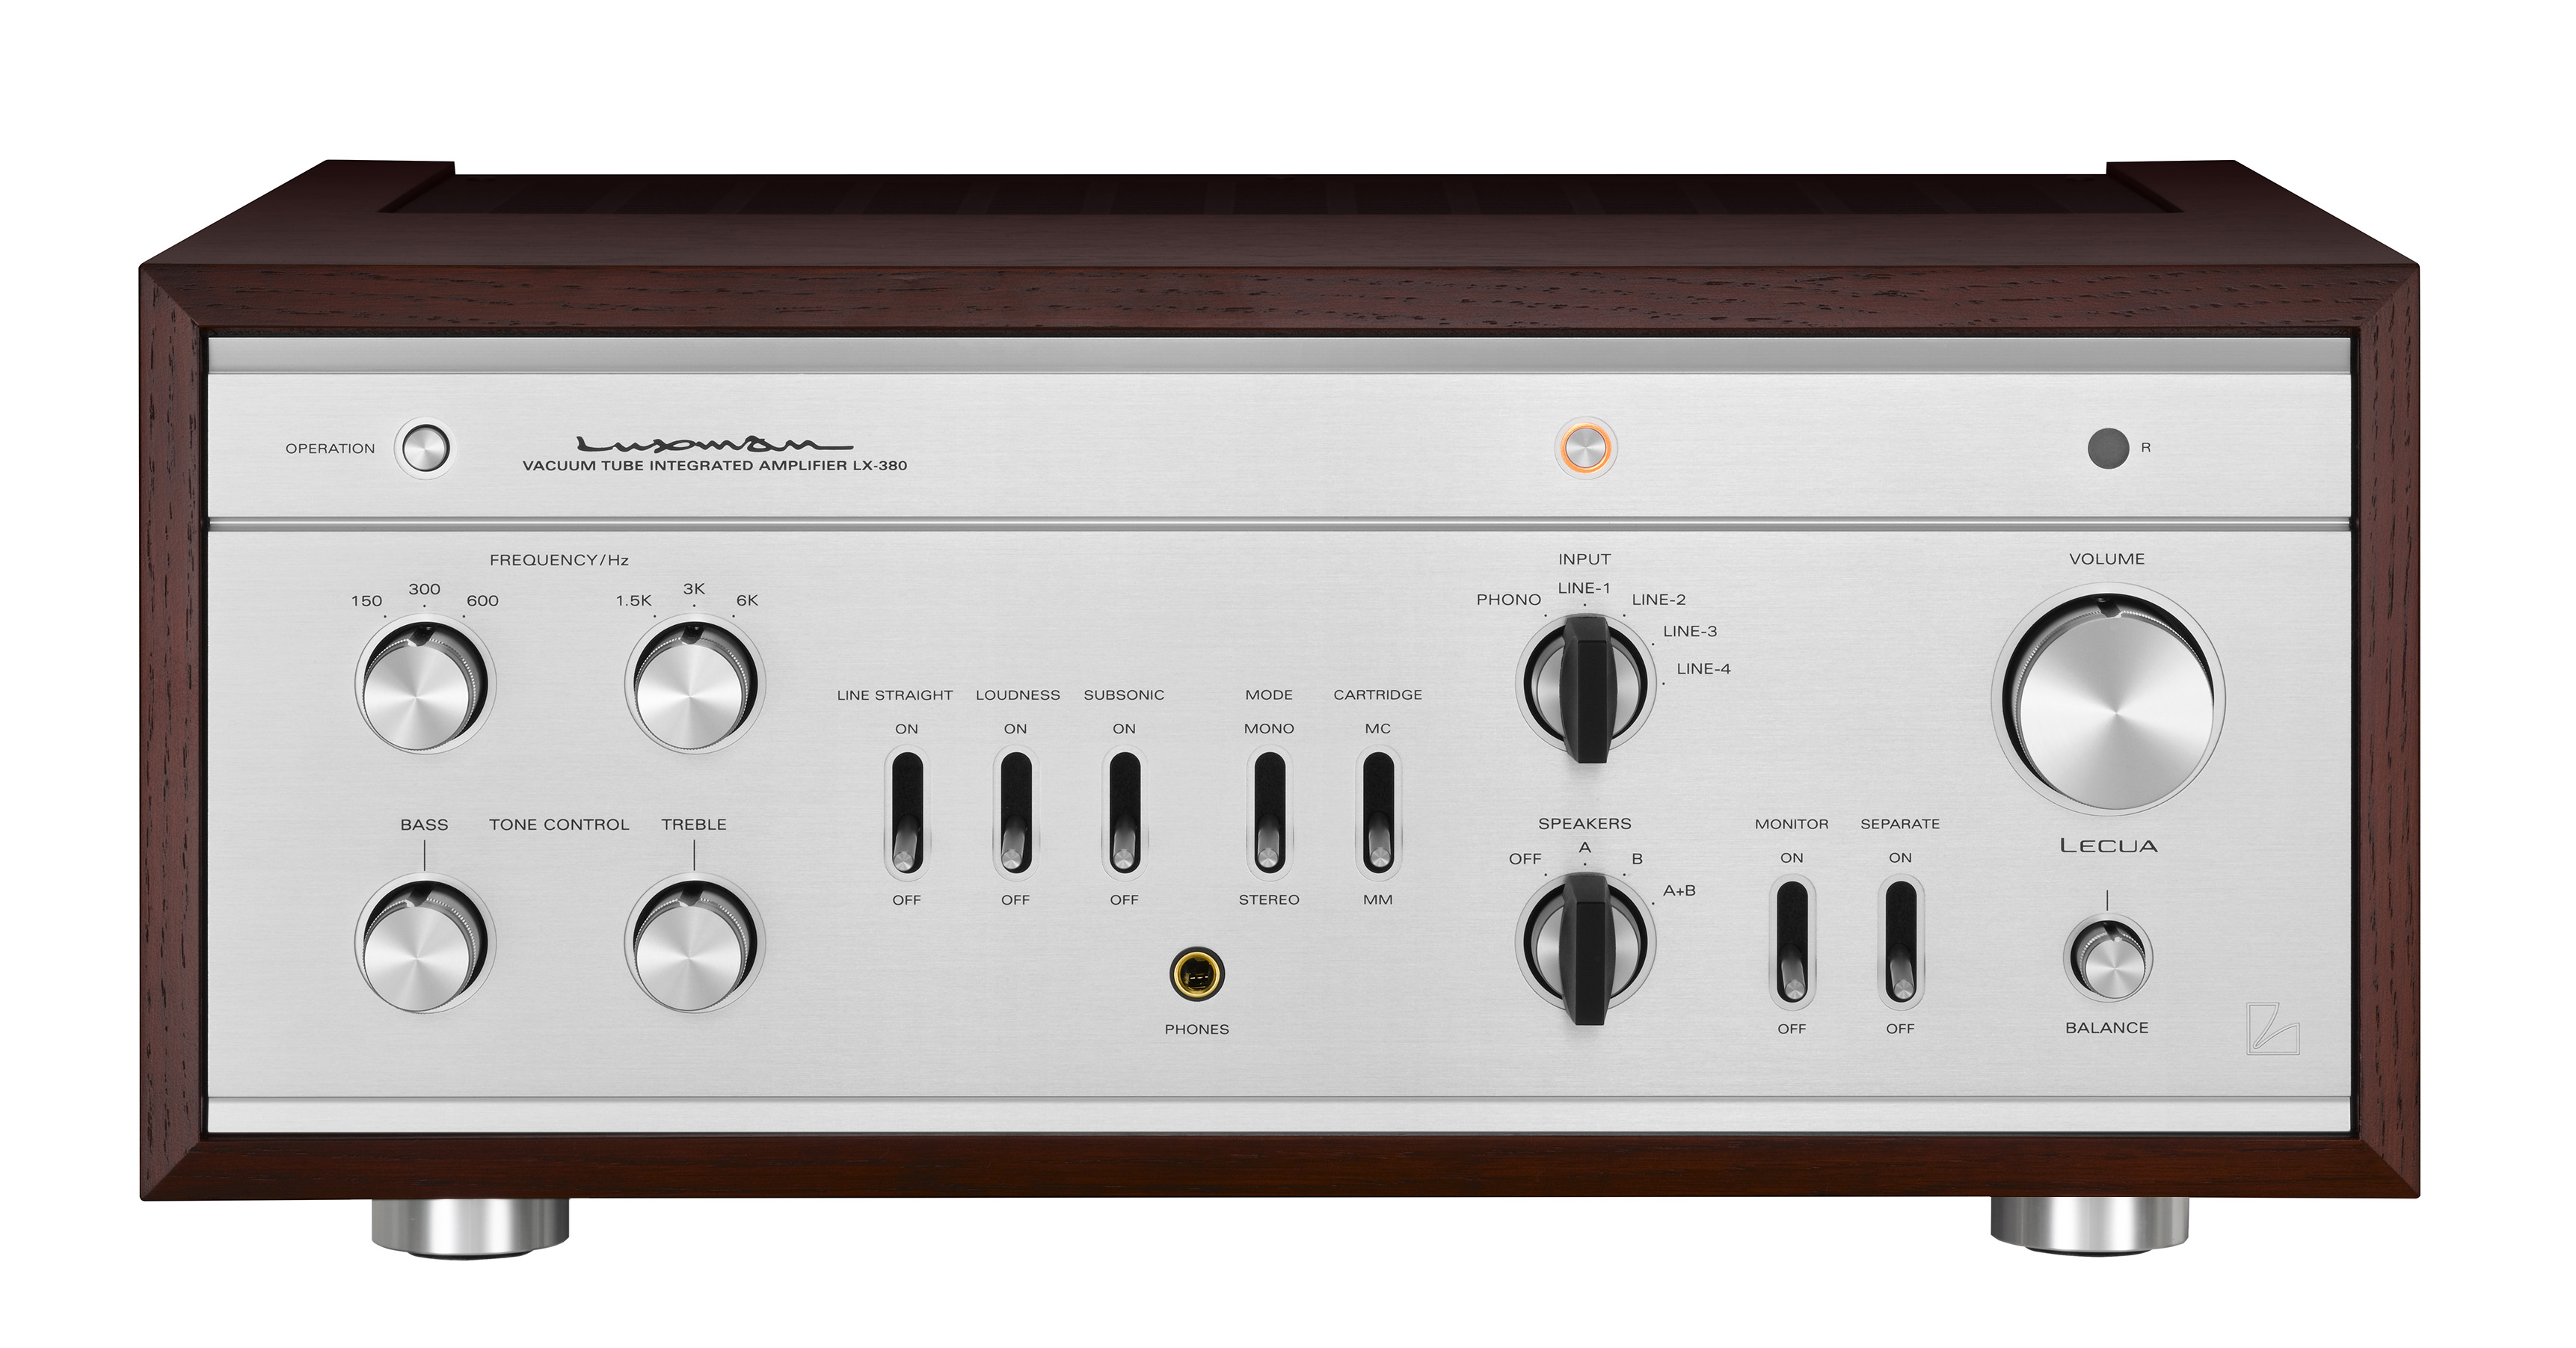 Lx 380 Vacuum Tube Amplifiers Products Luxman Seeking Higher 18 W Stereo Amplifier Circuit Gallery